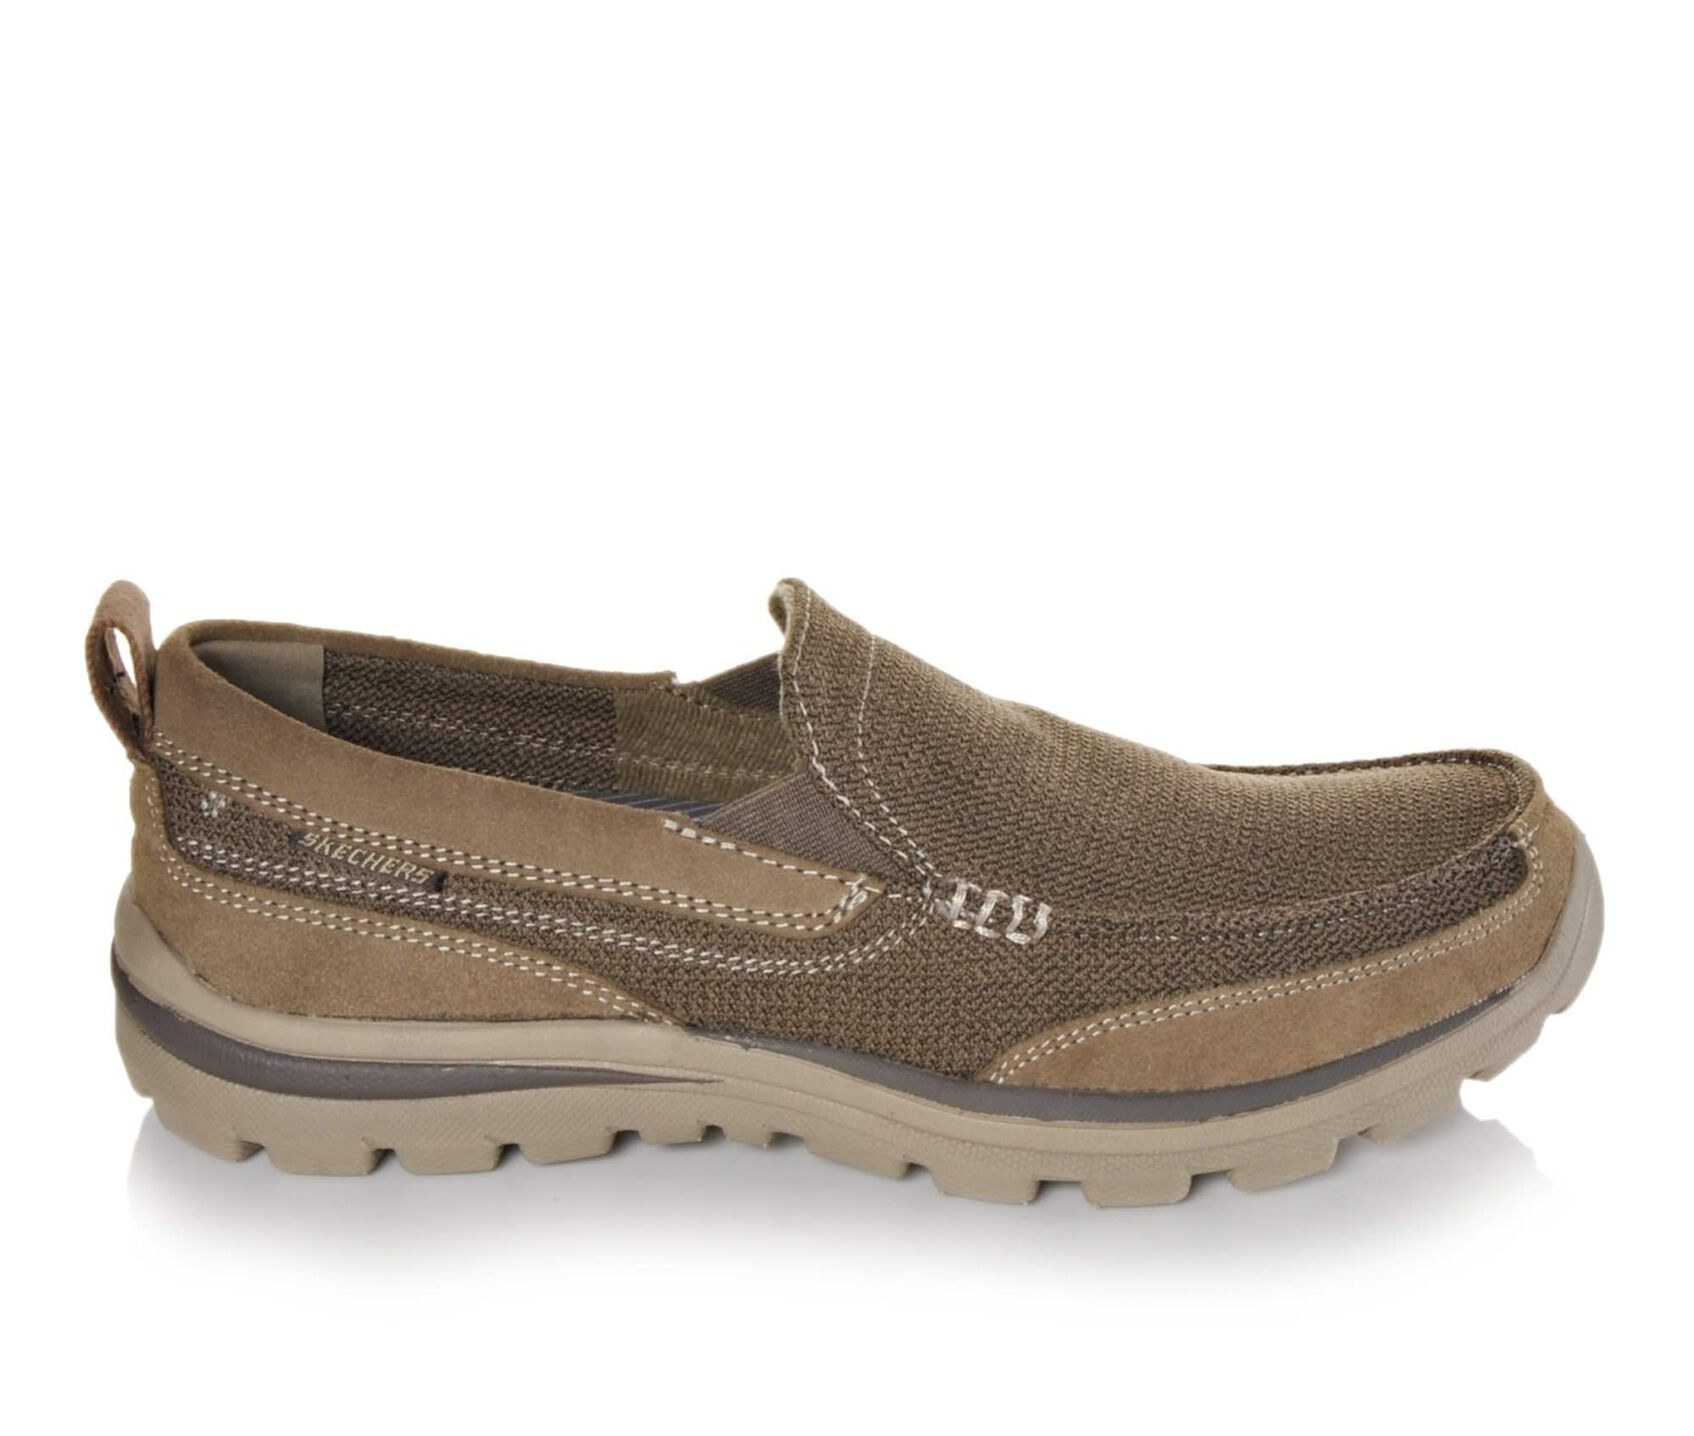 5881c21adc4a6 Men's Skechers Milford 64365 Casual Shoes | Shoe Carnival